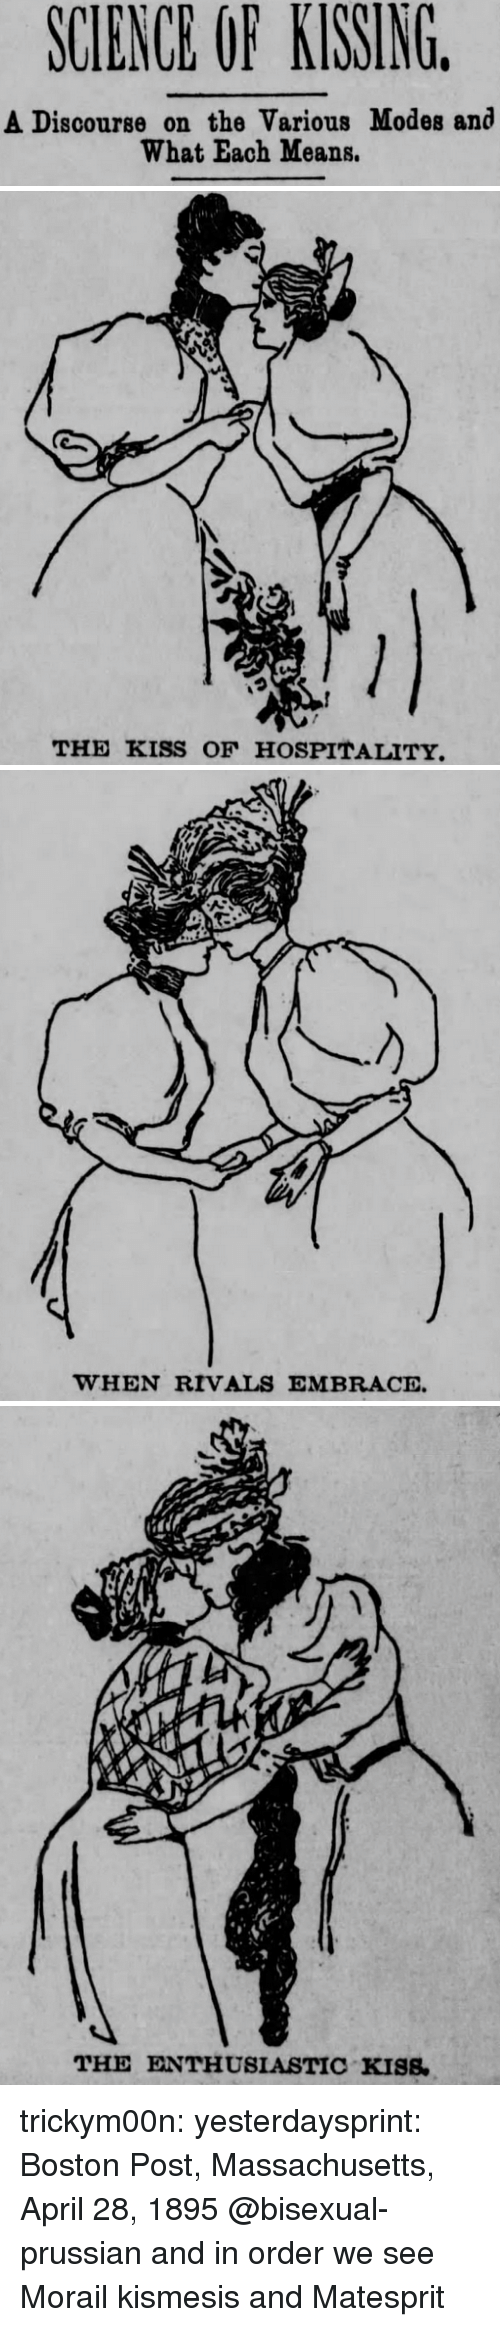 Target, Tumblr, and Blog: SCIENCE OF KISSING  A Discourse on the Various Modes and  What Each Means.   っ  THE KISS OF HOSPITALITY   WHEN RIVALS EMBRACE   THE ENTHUSIASTIC KISS. trickym00n:  yesterdaysprint:  Boston Post, Massachusetts, April 28, 1895  @bisexual-prussian and in order we see Morail kismesis and Matesprit